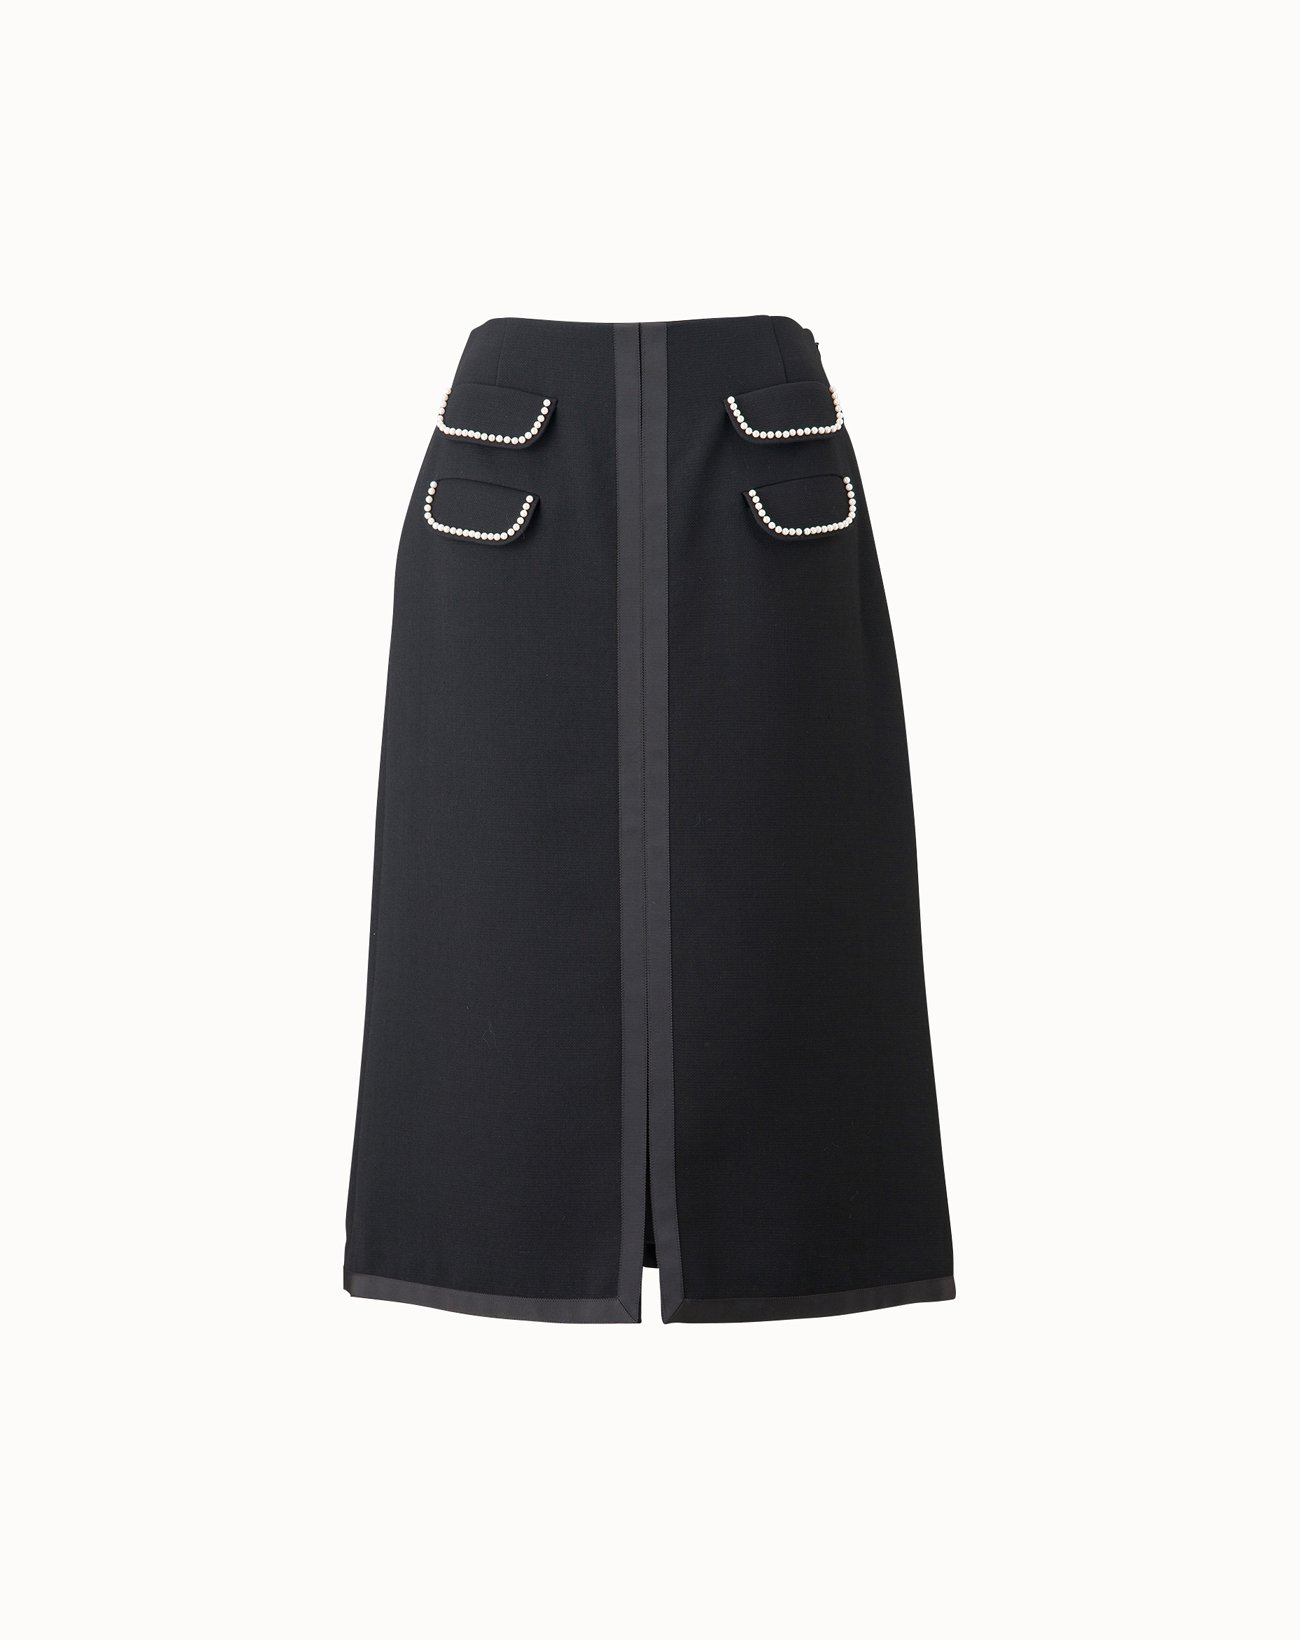 Triple Cloth Skirt - Black